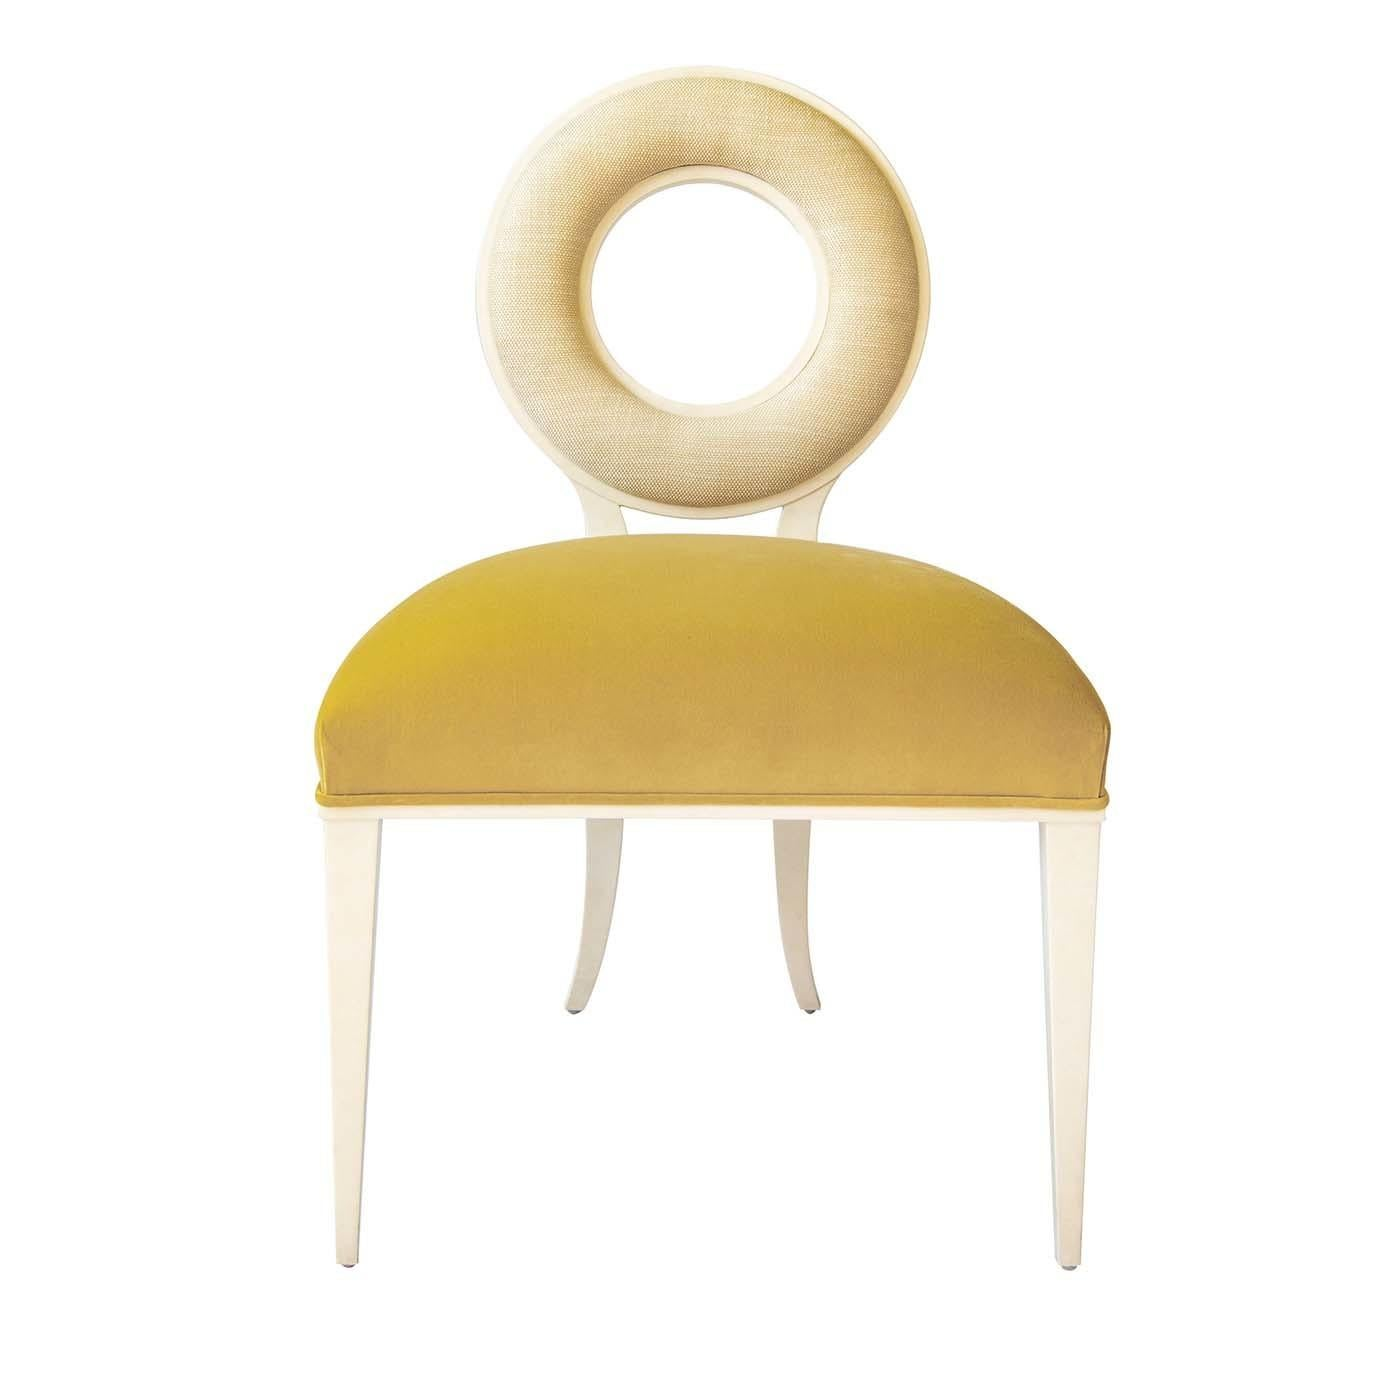 Moon Yellow Chair by Tura